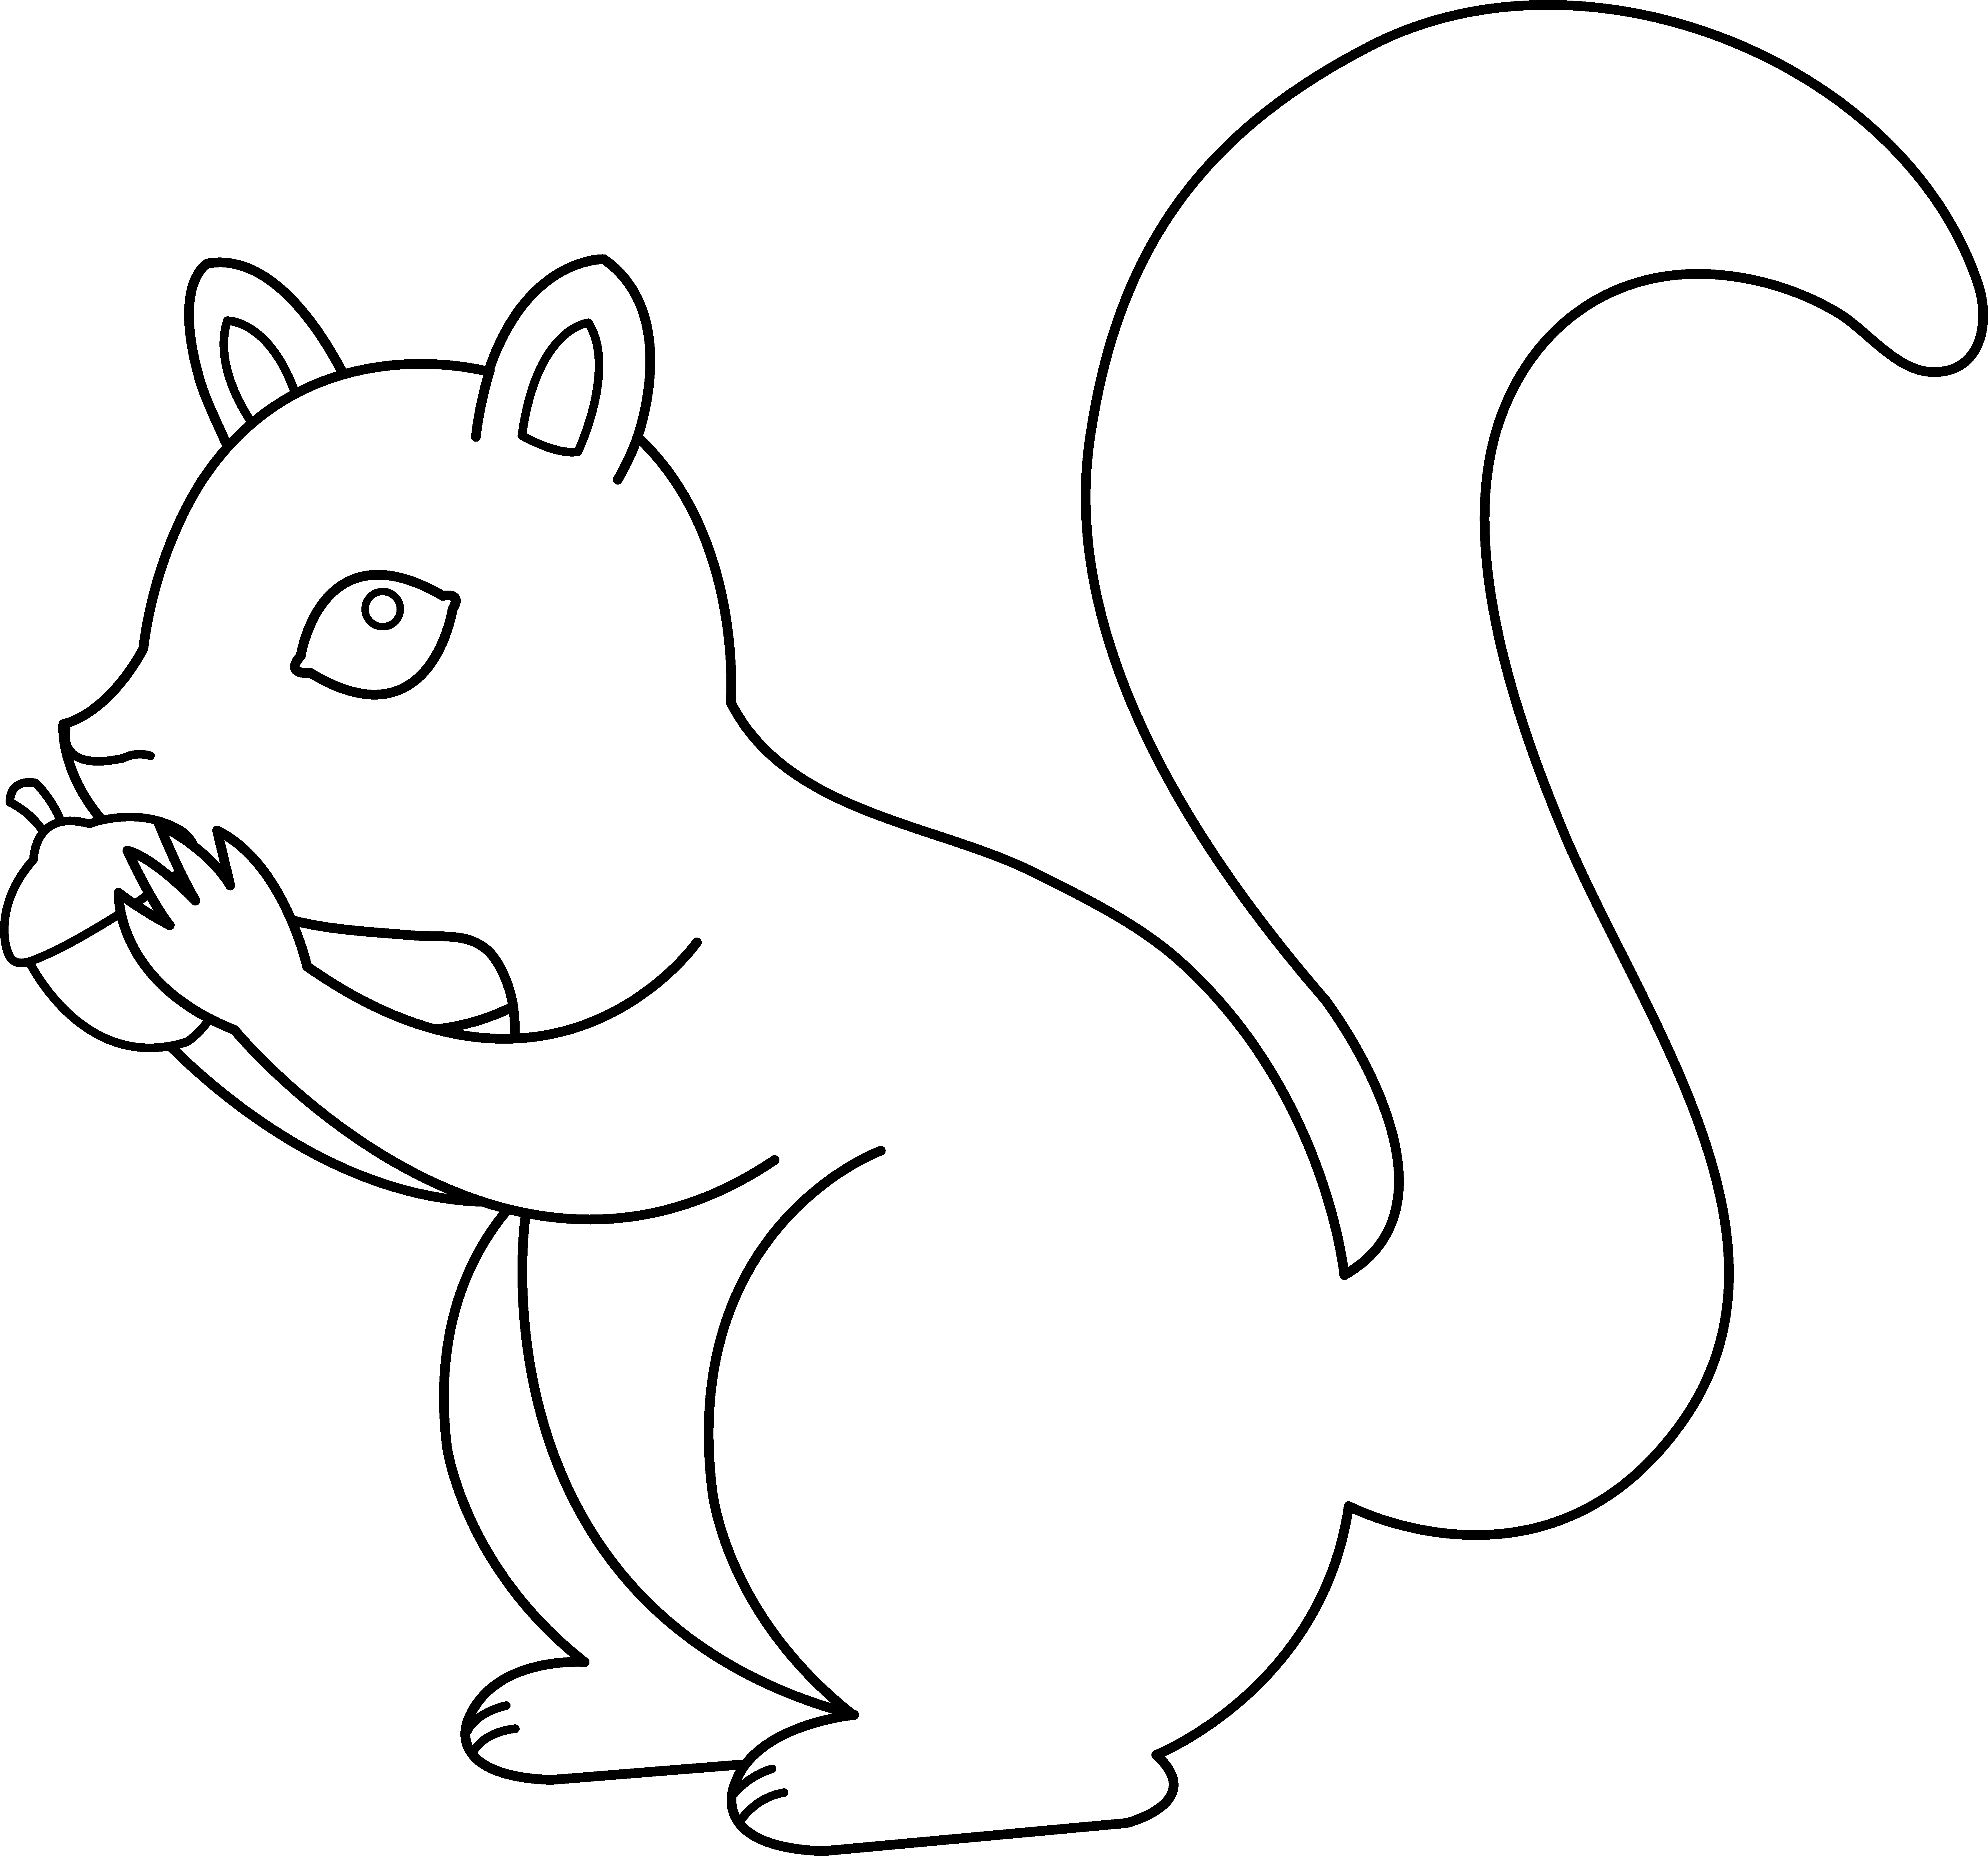 Squirrel in snow clipart black and white picture transparent download HD Acorn Clipart Fox Squirrel - Squirrel In Snow Clipart ... picture transparent download